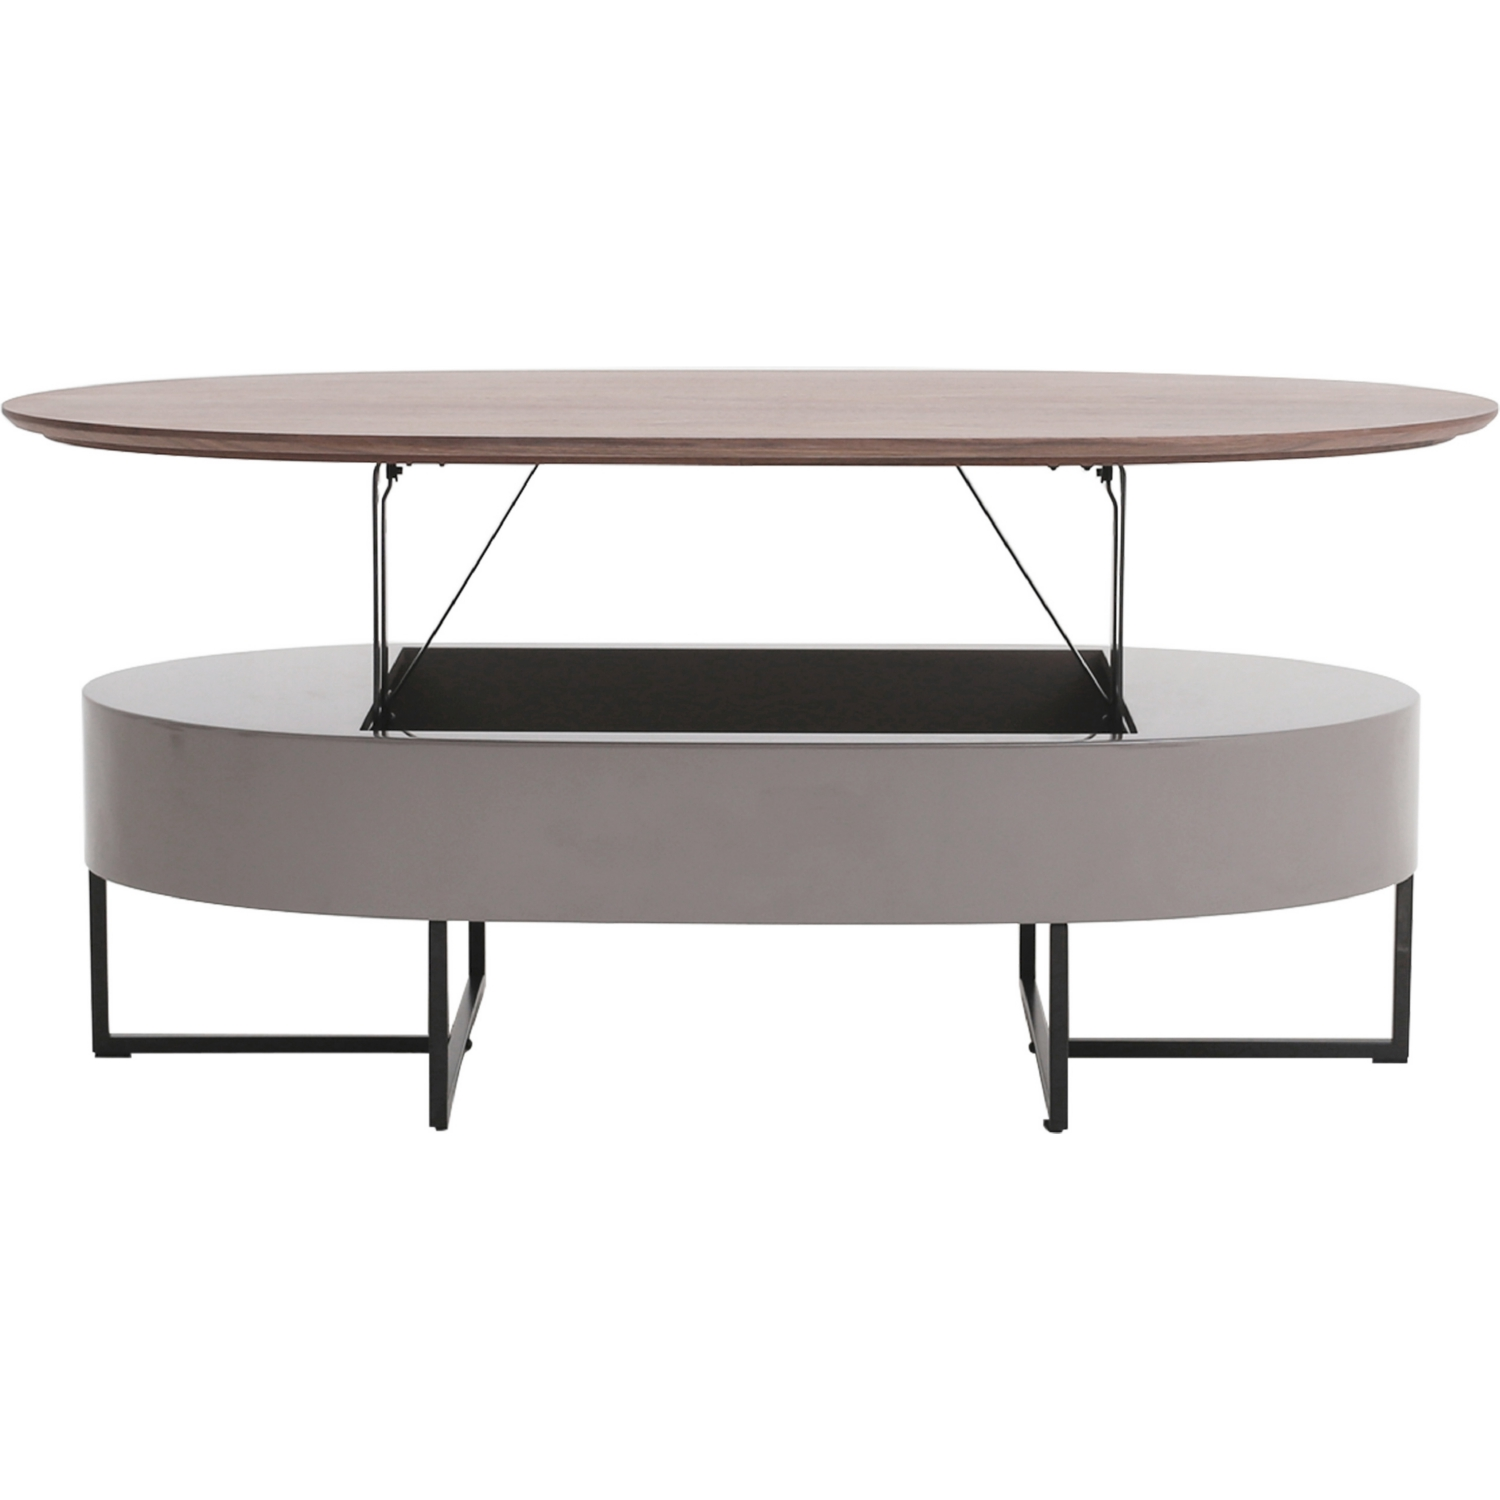 Marvelous Oval Lift Top Coffee Table Part - 13: Hansel Oval Lift-Top Coffee Table In Walnut U0026 Gray On Black Iron Legs